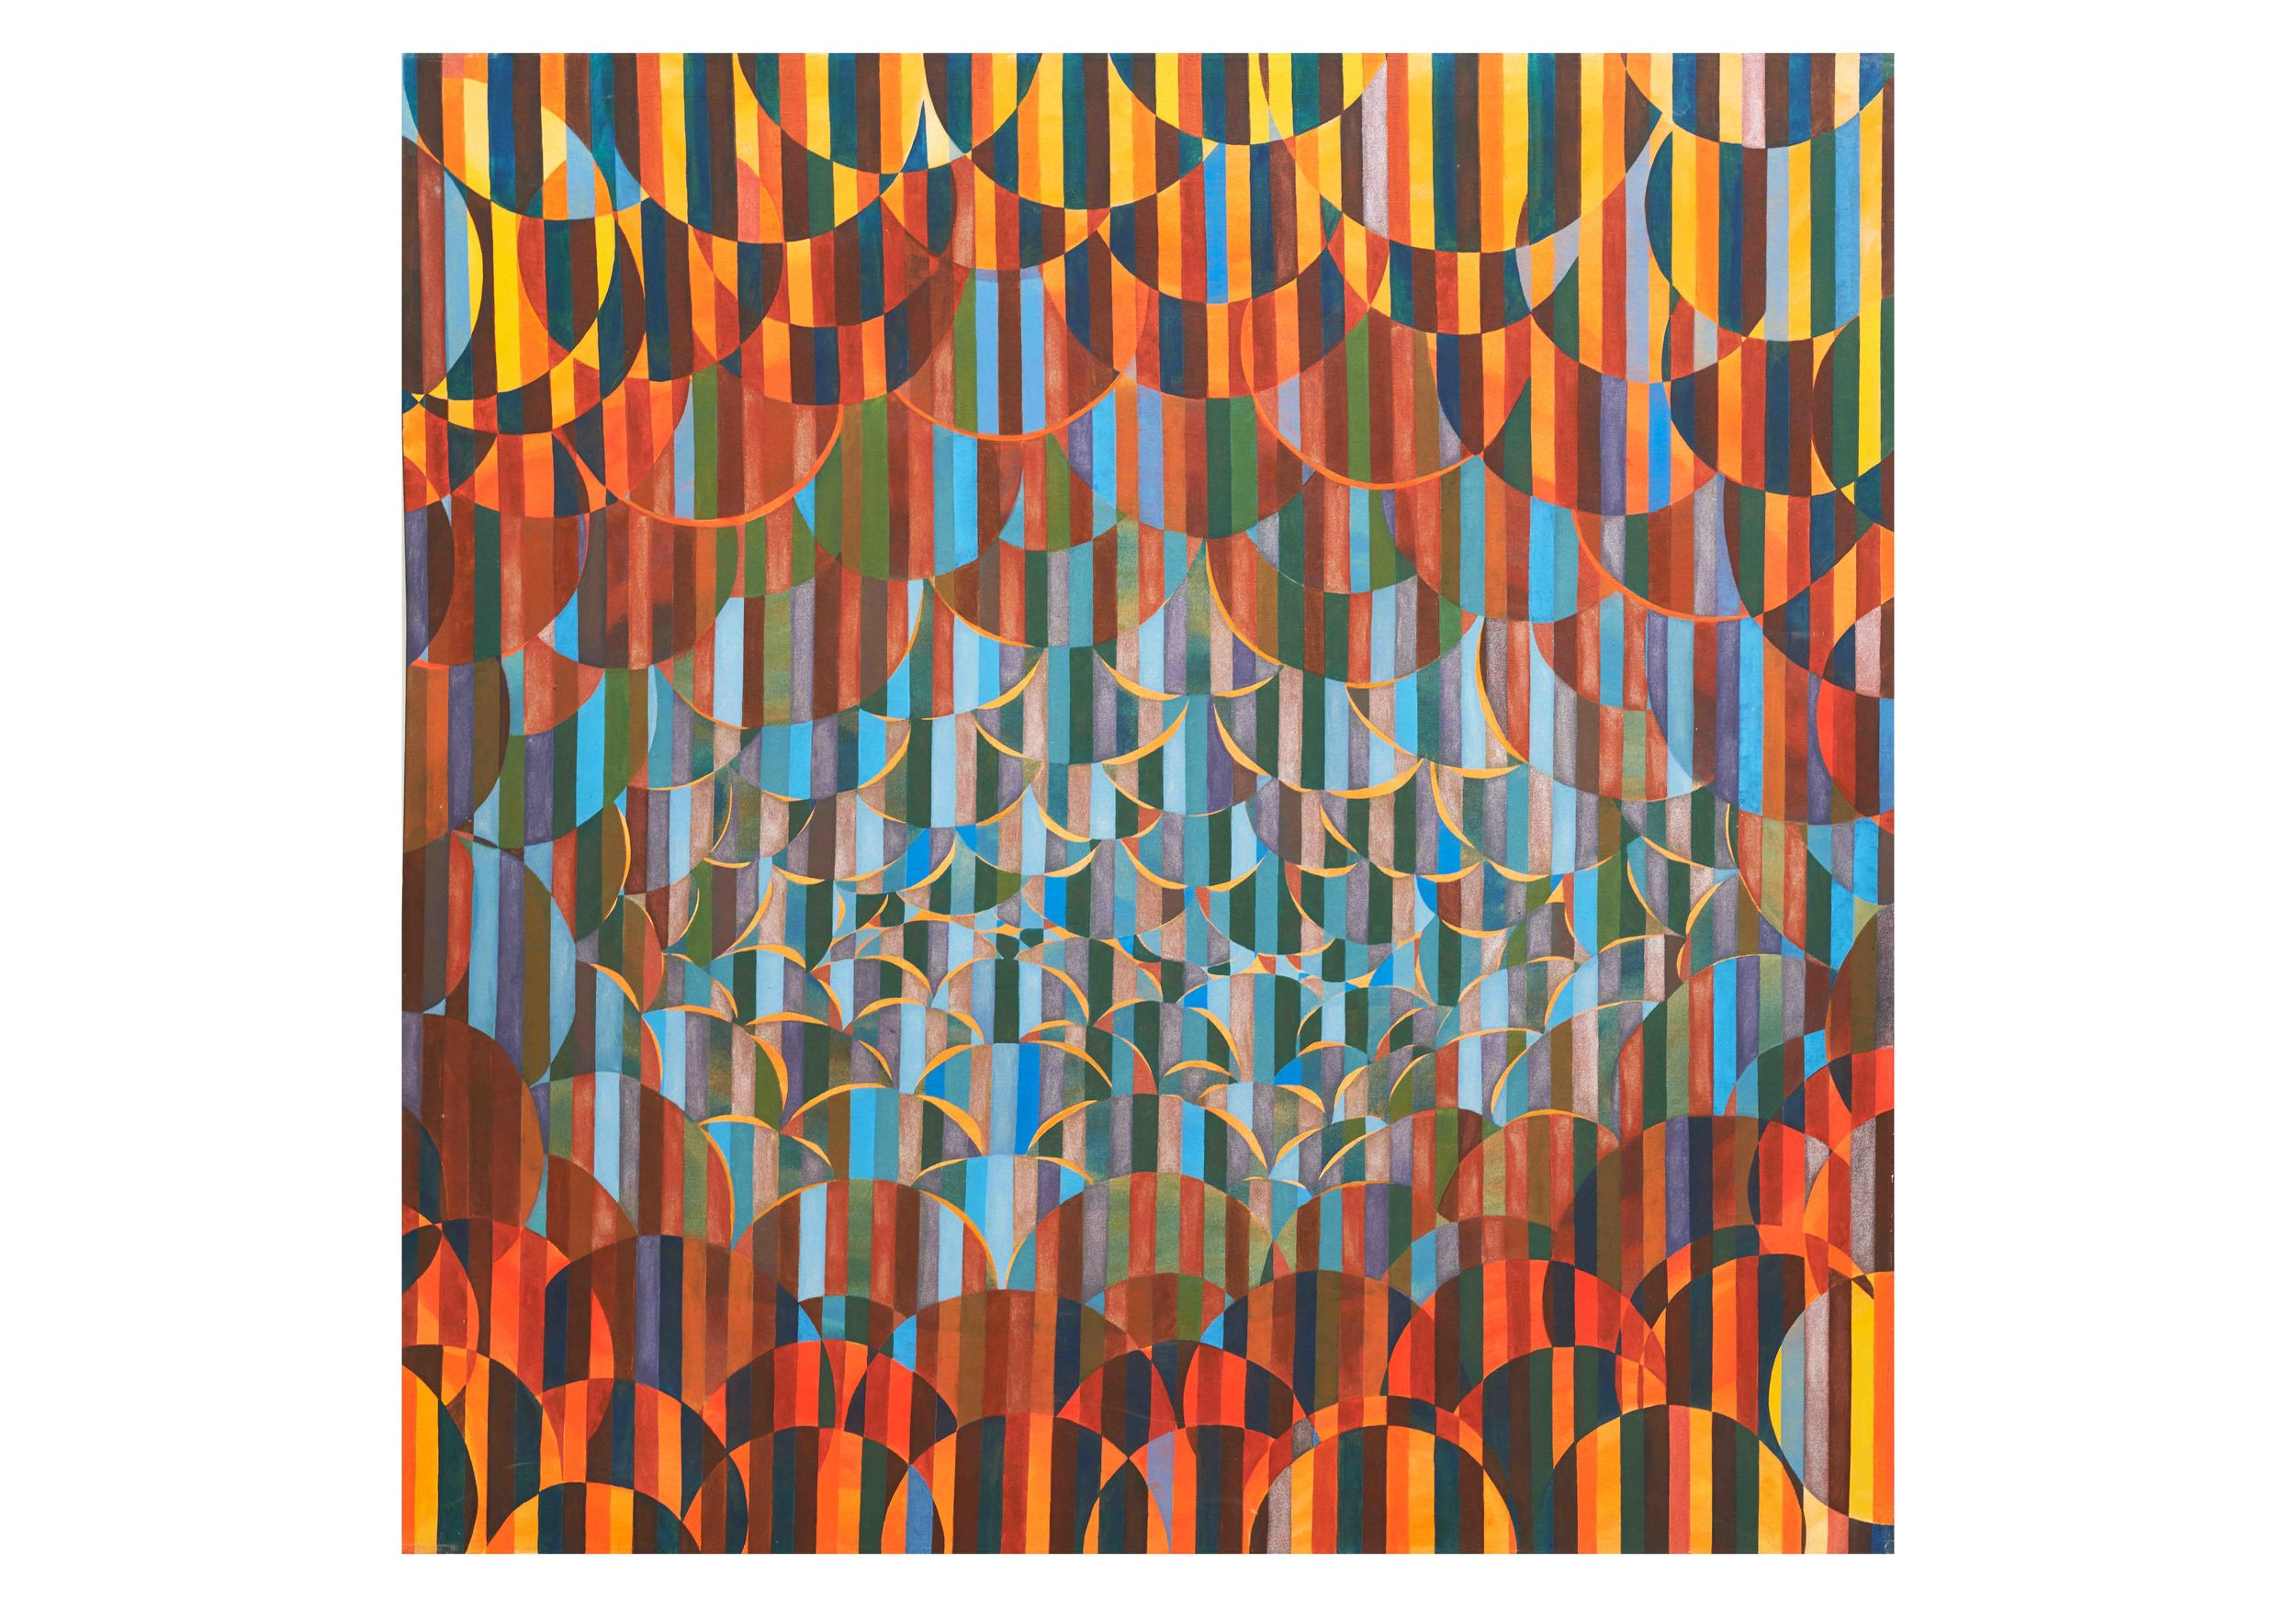 8. Elation, 1975. New York. (Image size 65cm wide x 65cm tall) £500